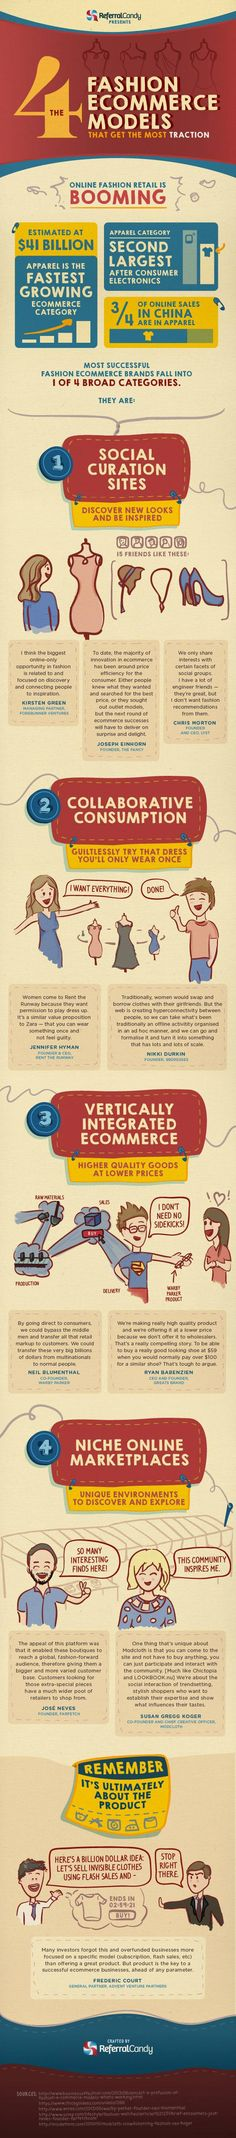 Infographic: The 4 Fashion Ecommerce Models That Get The Most Traction #infographic